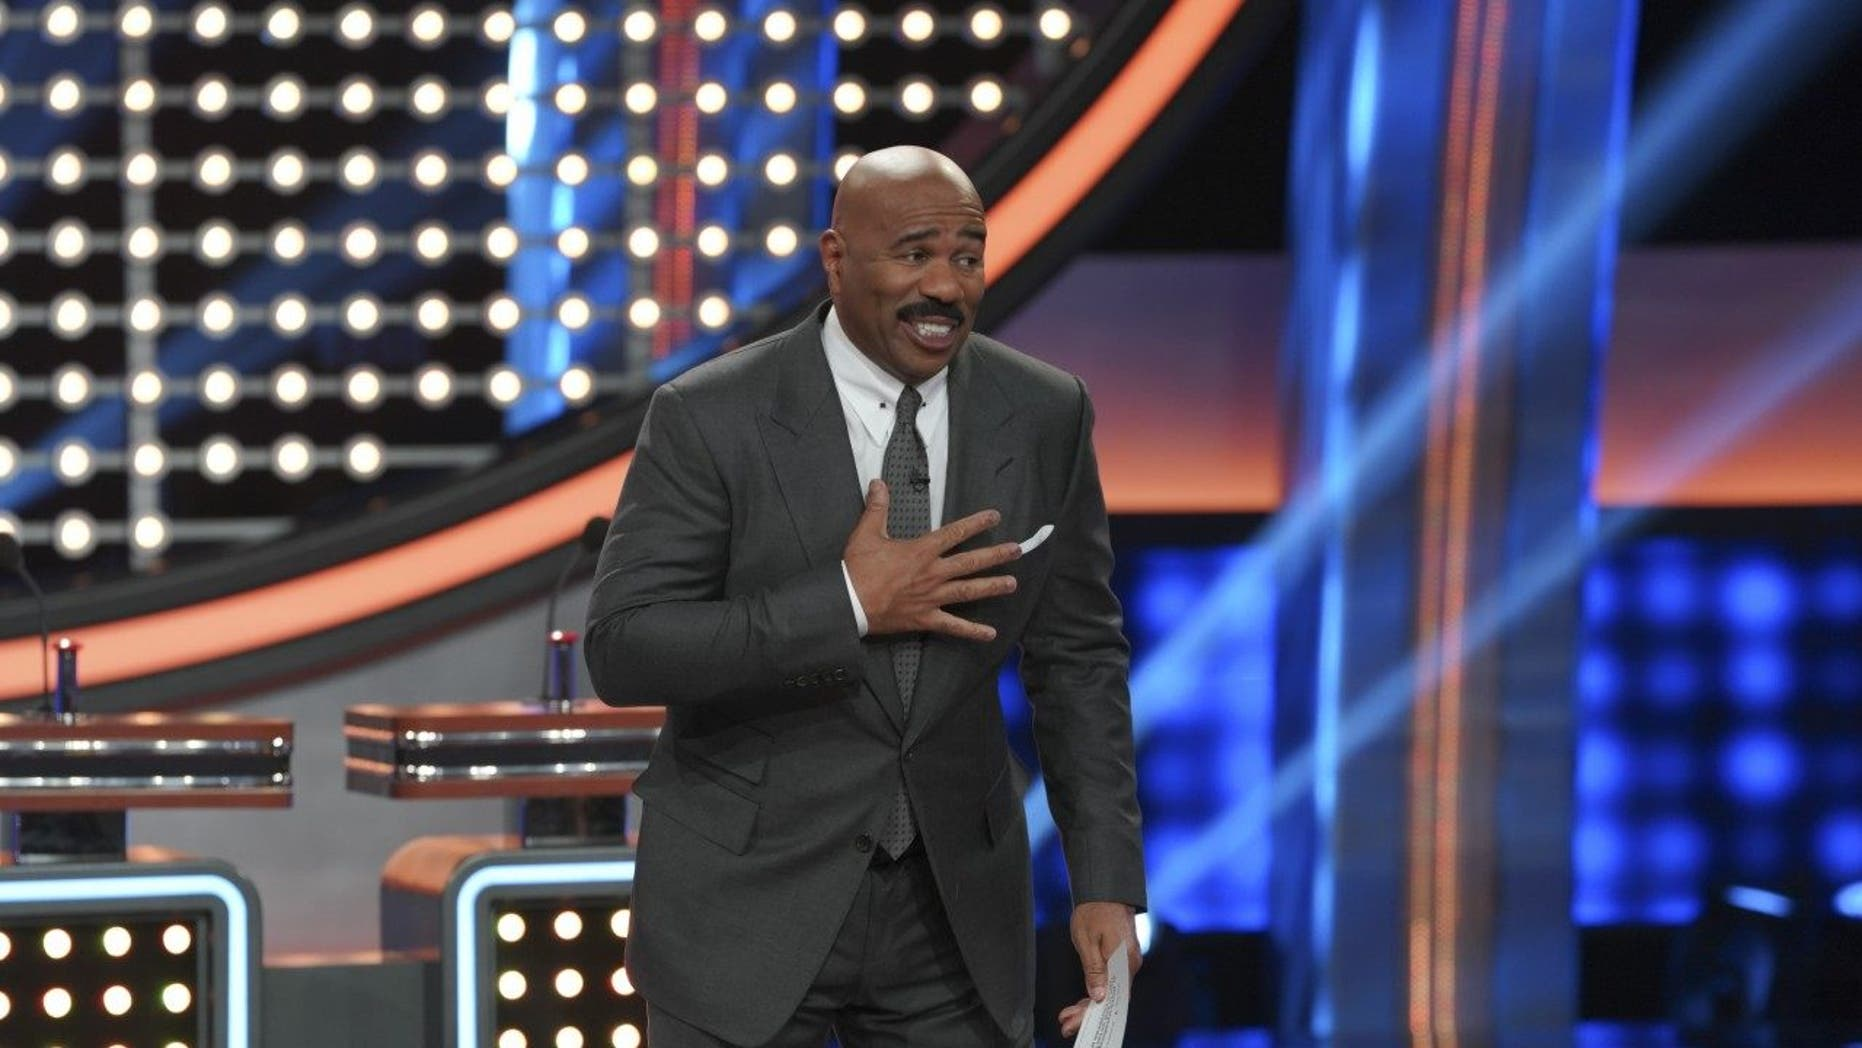 Steve Harvey is set to host the 2018 Miss Universe competition on December 16.